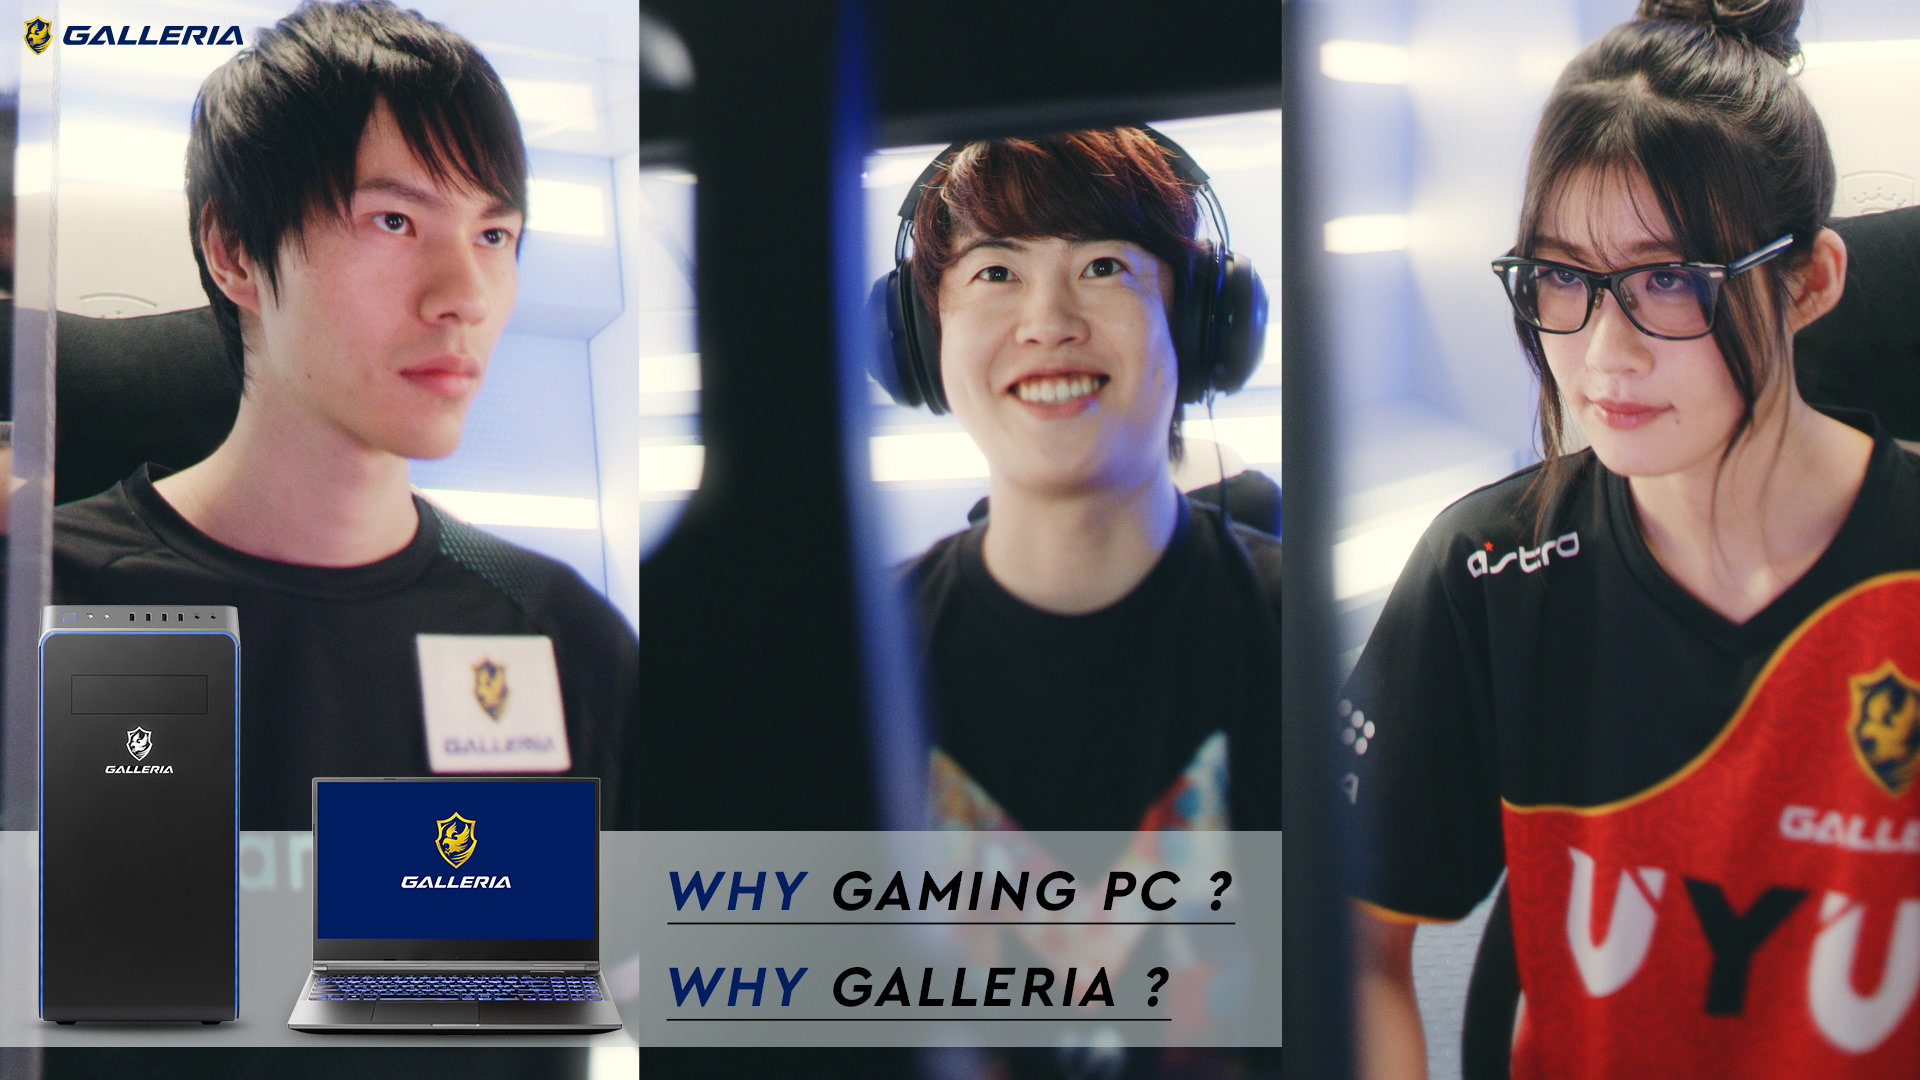 GALLERIA 新TVCM「WHY GAMING PC? WHY GALLERIA?」放映開始